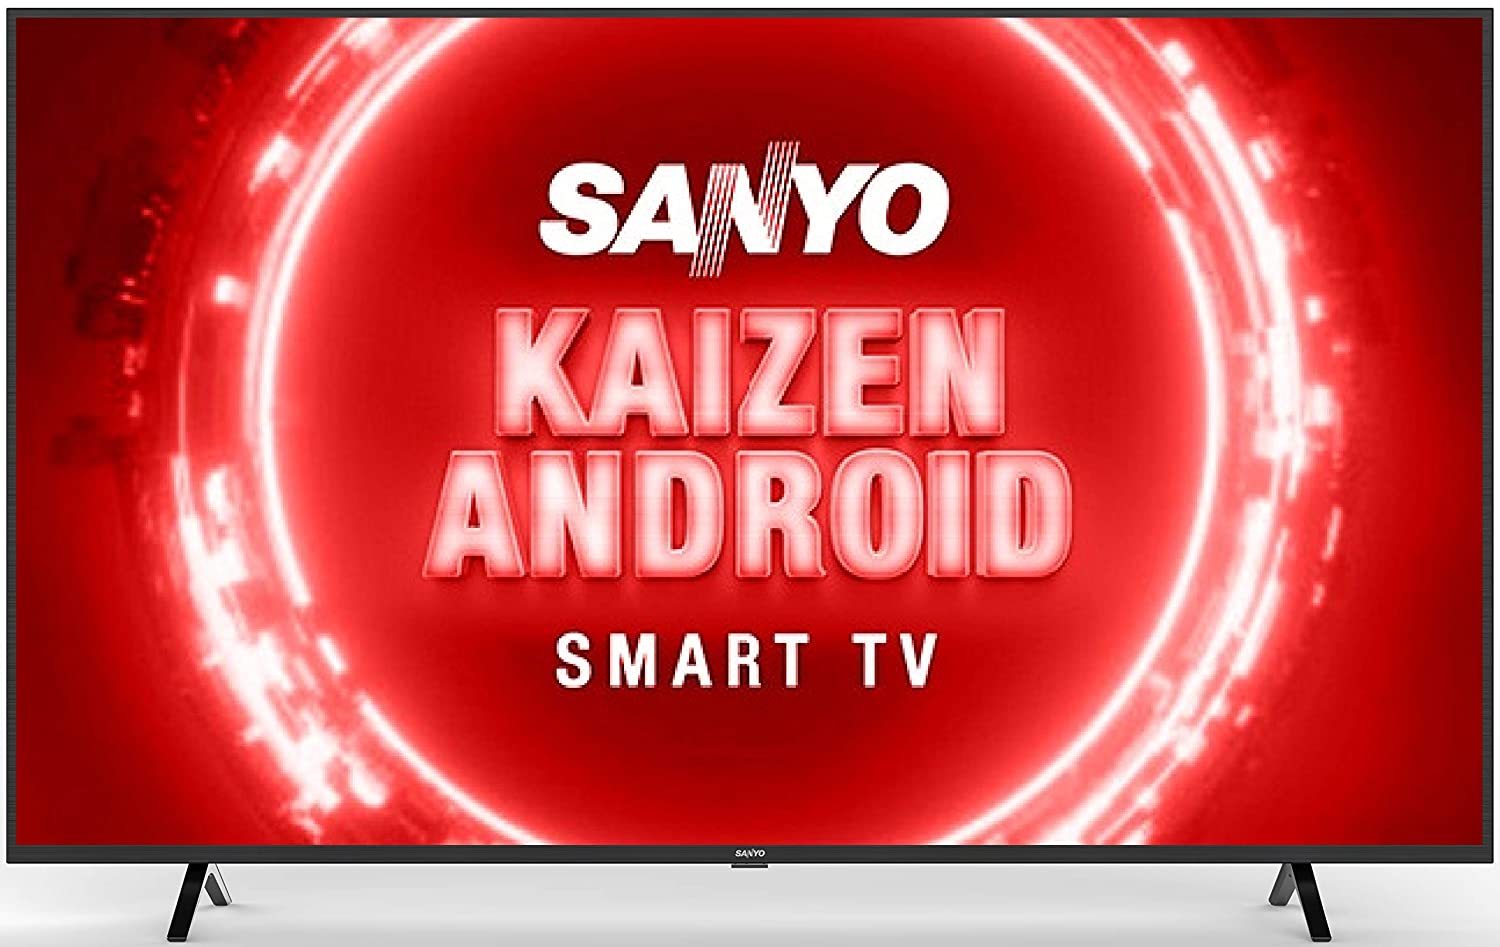 Sanyo 164 cm (65 inches) Kaizen Series 4K Ultra HD Certified Android LED TV